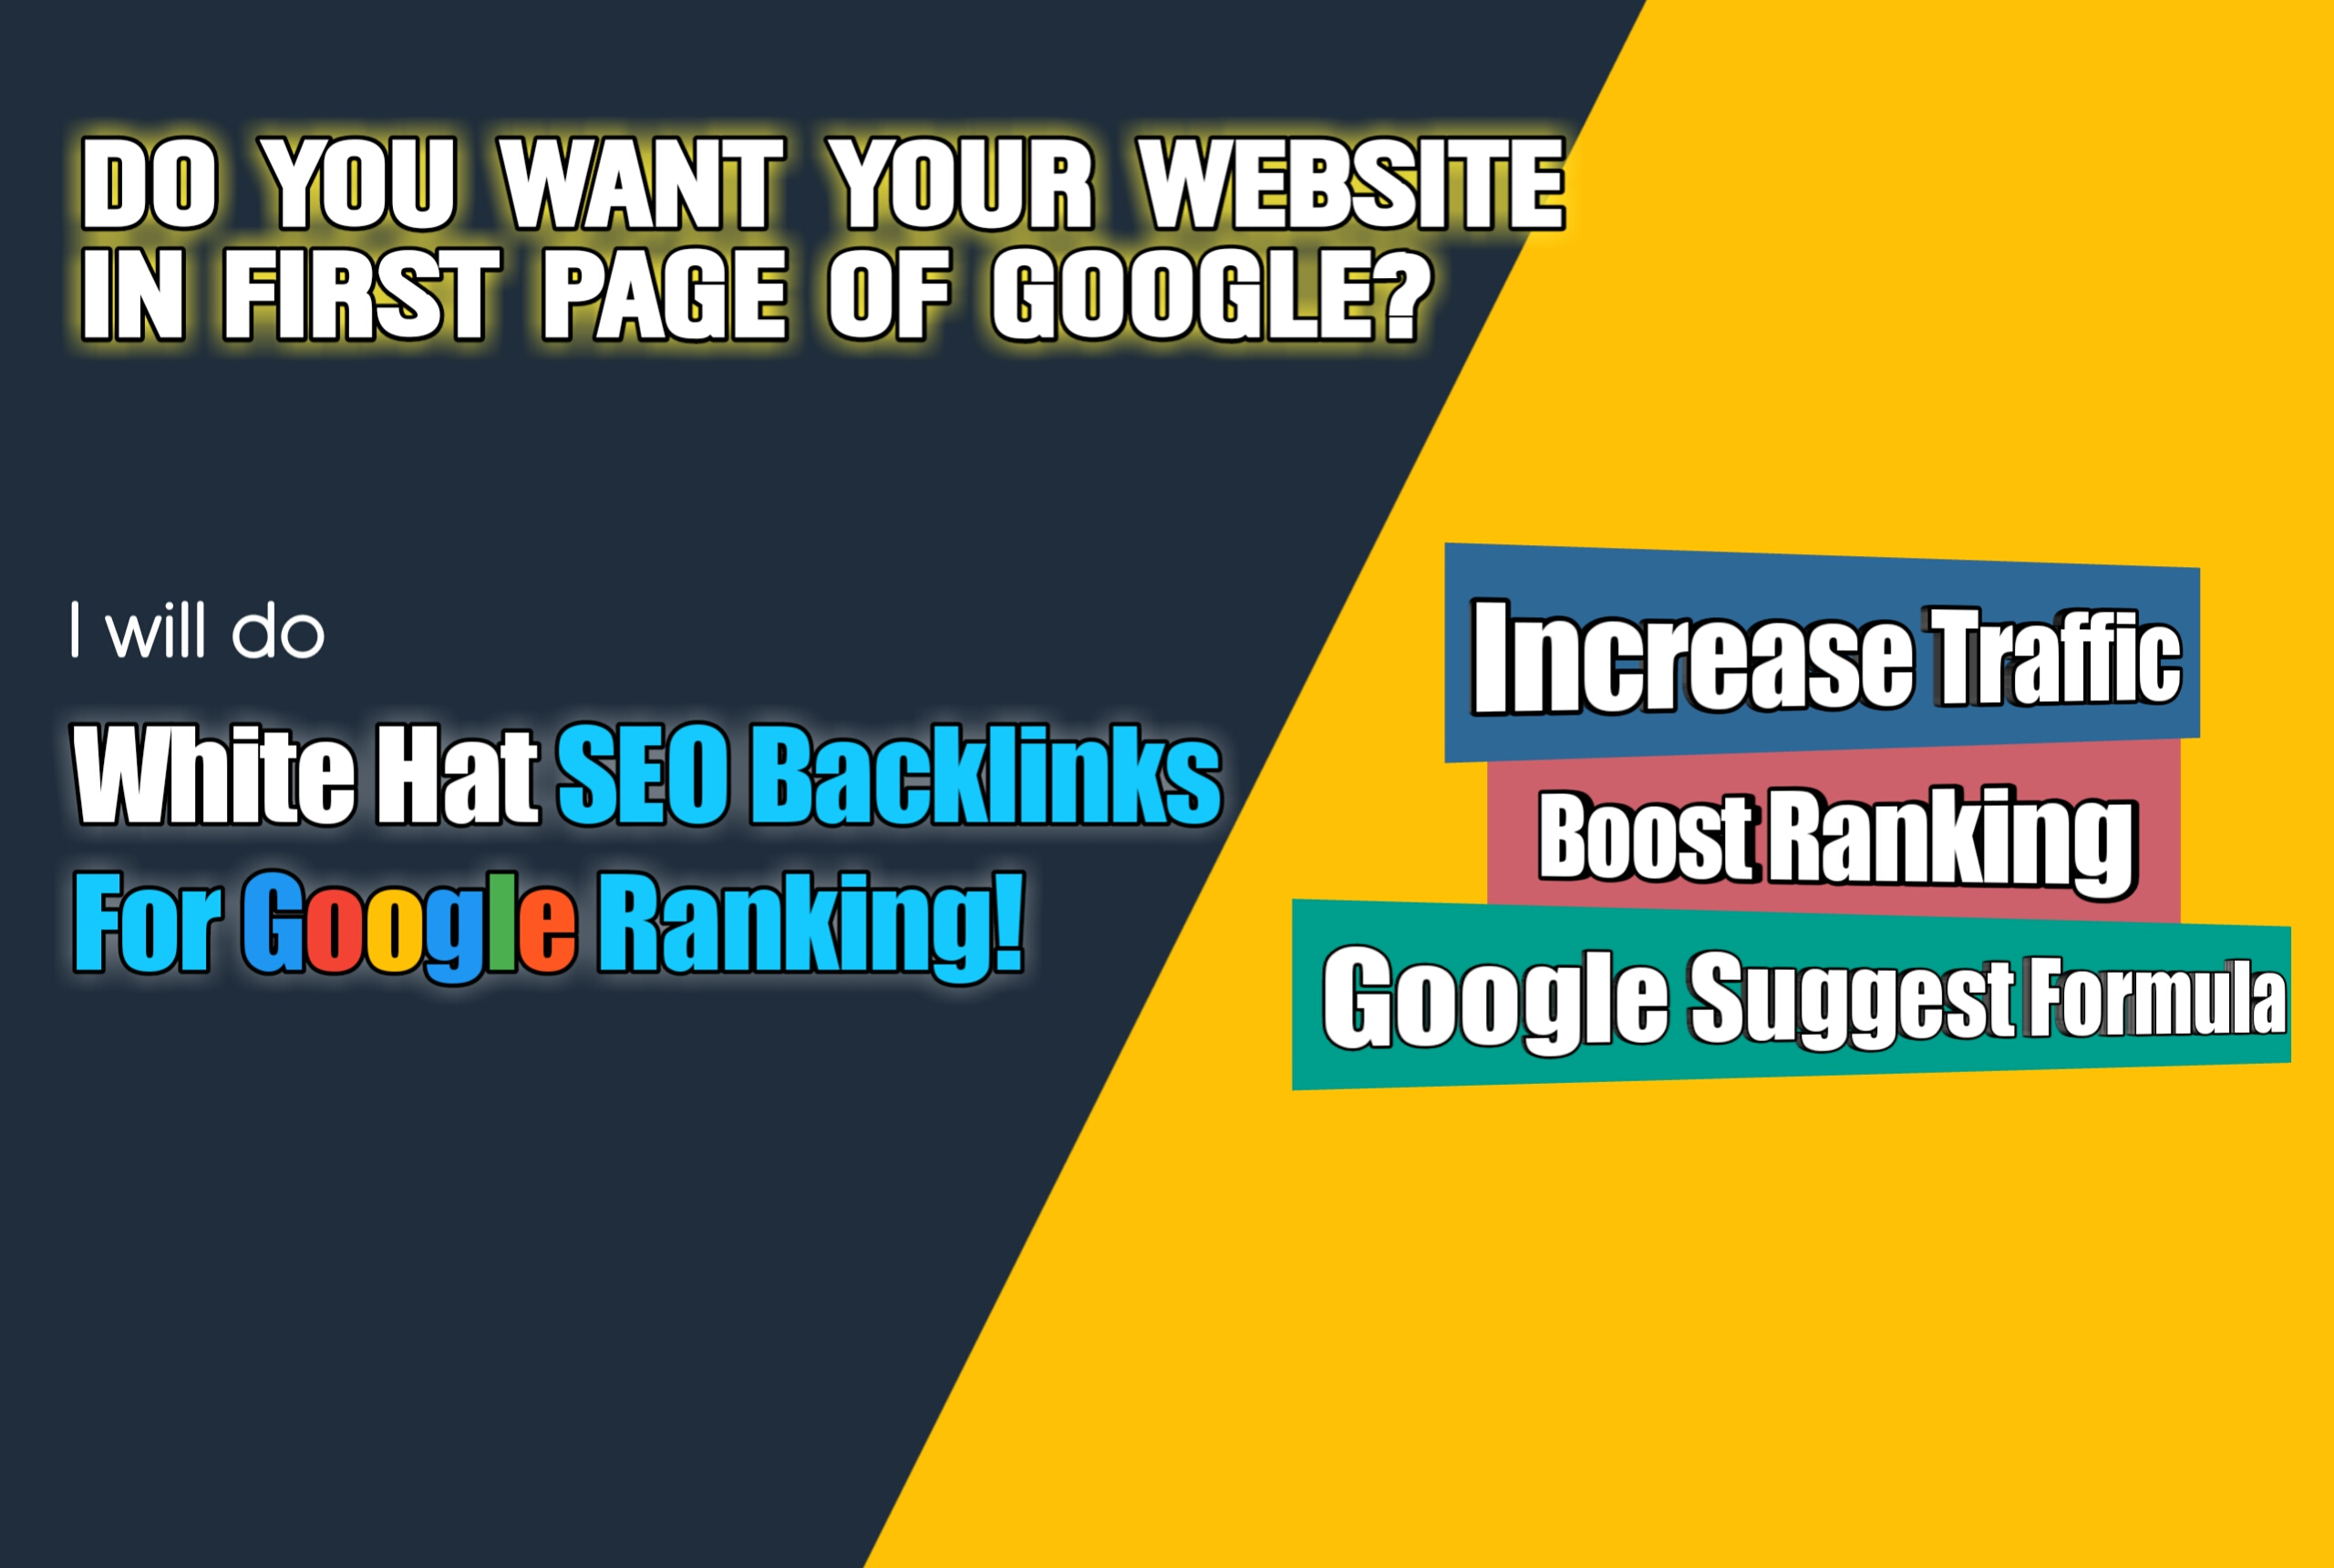 Boost your website to first page of Google with Quality Backlinks